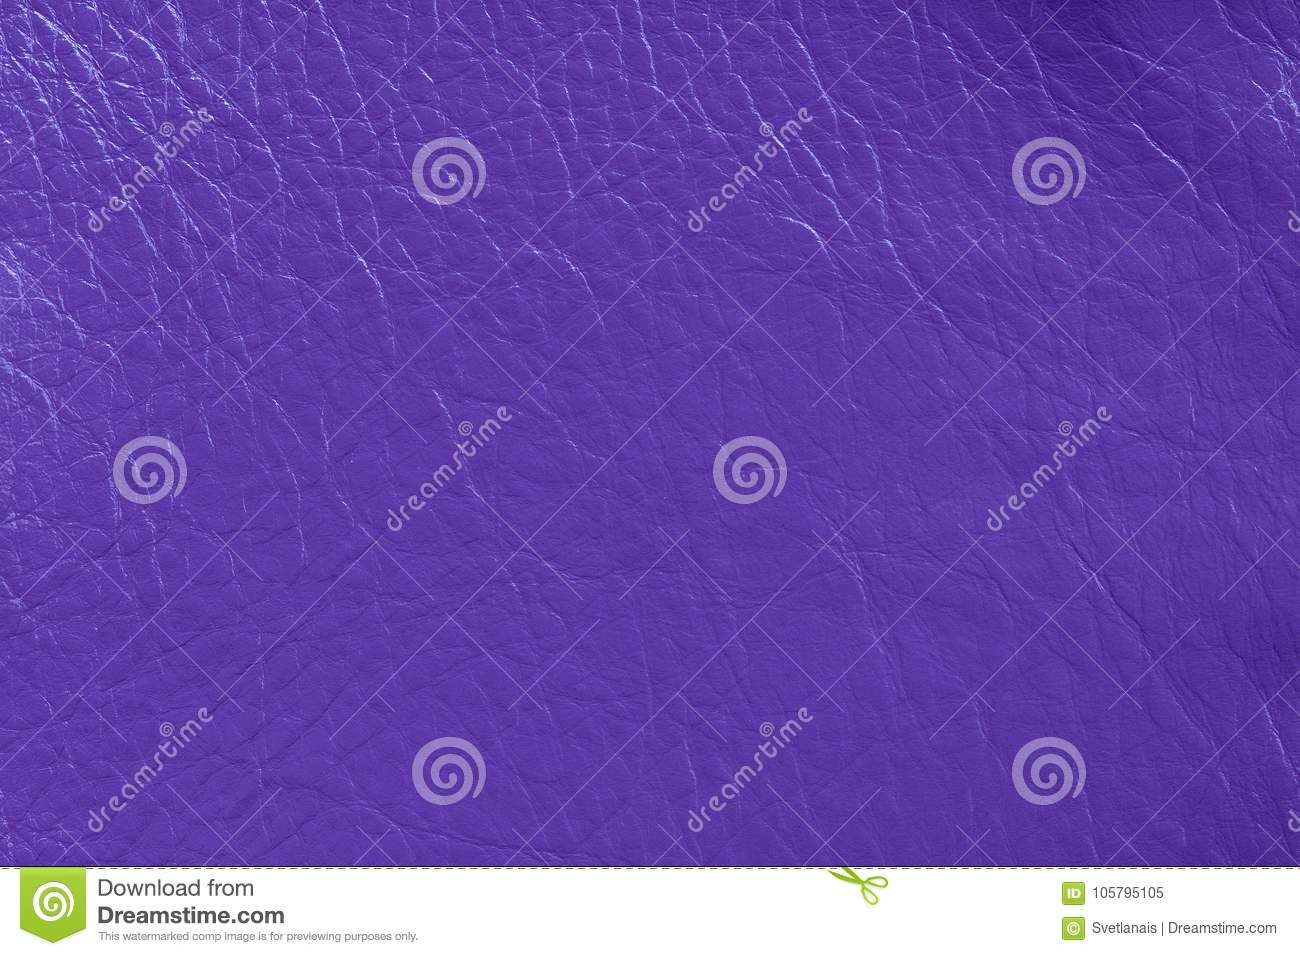 Texture of genuine leather close-up, bright, fashionable ultraviolet color of the 2018 year, purple, violet trendy background. For wallpaper, design, web, ...